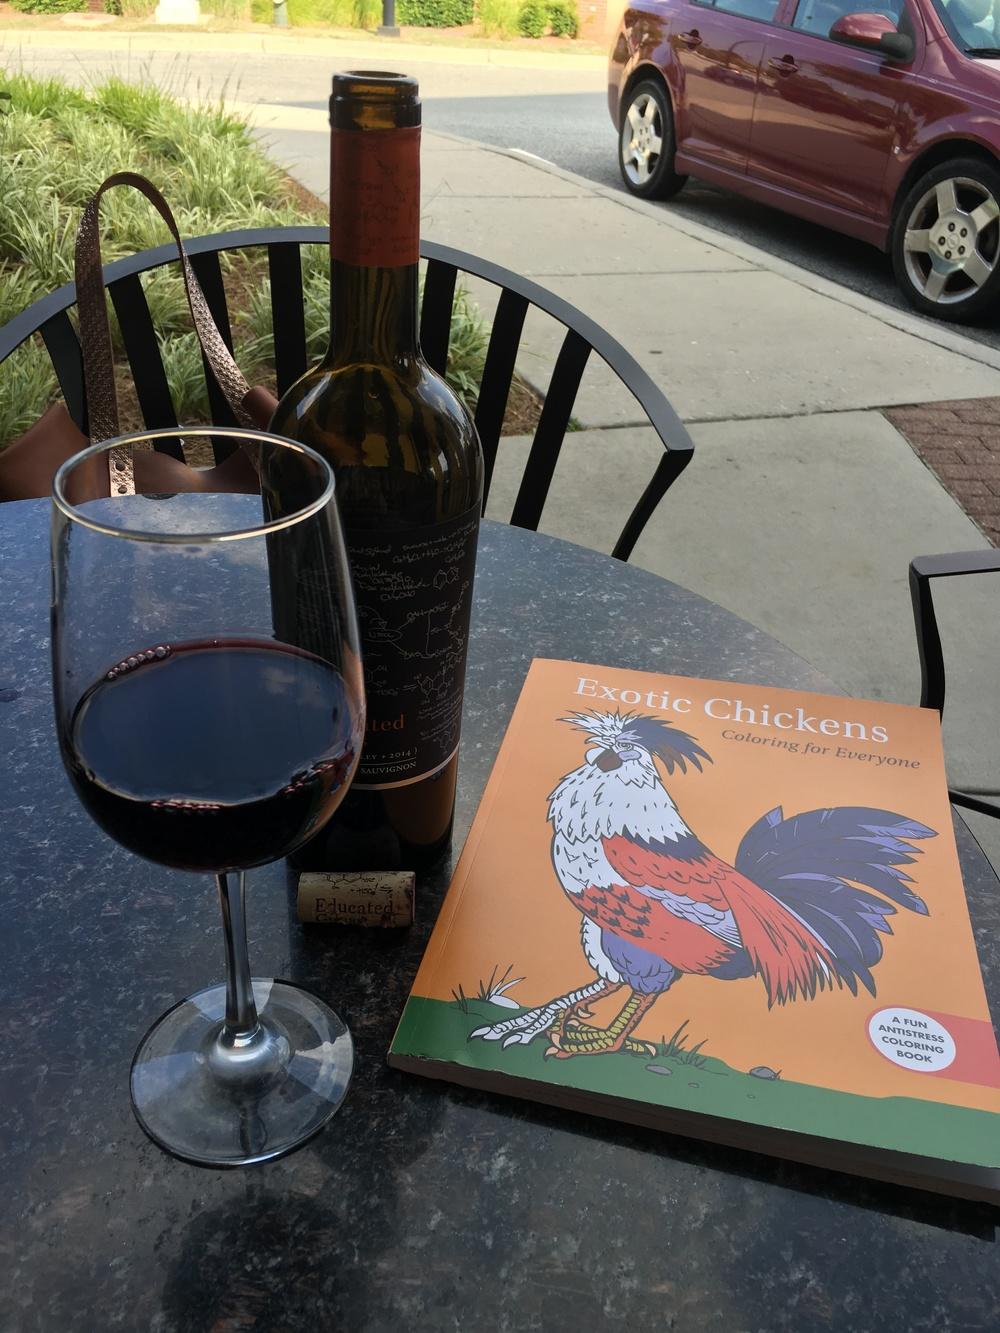 Good wine and a chicken coloring book. All on a lovely Summer afternoon.